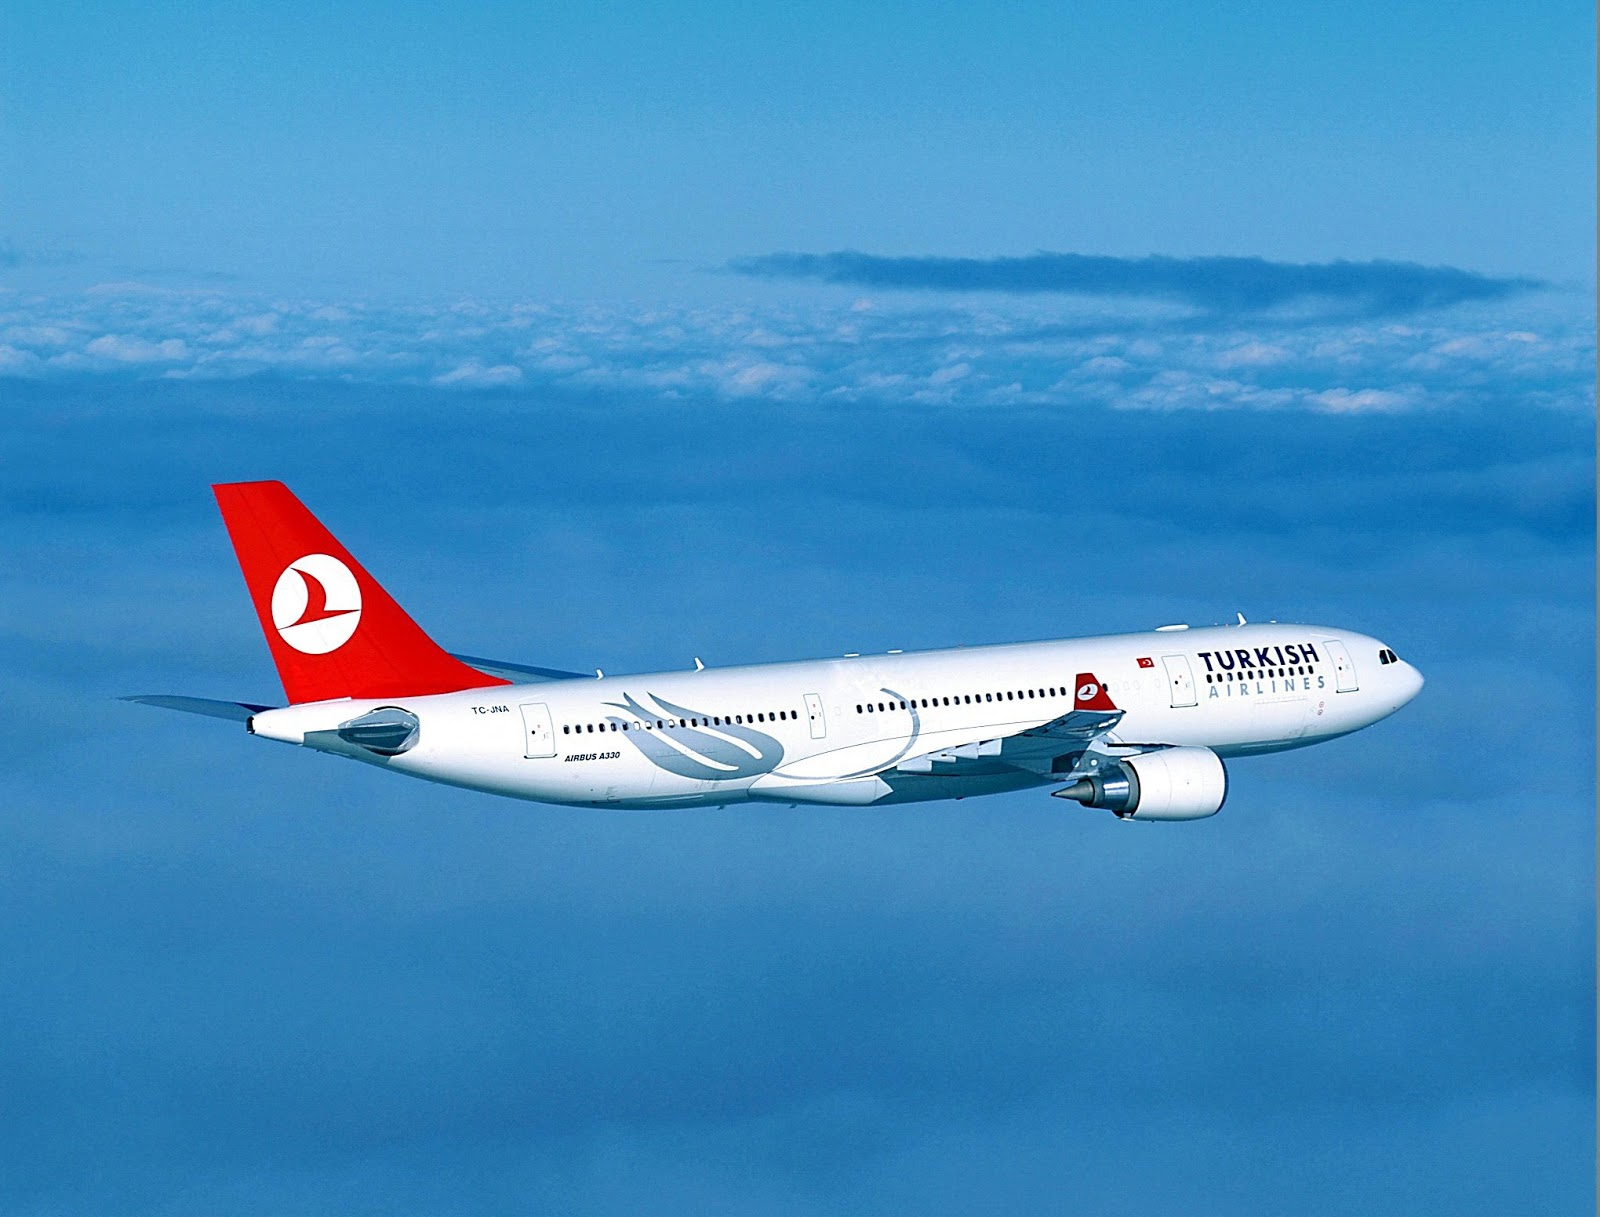 Turkish airlines online check-in pages